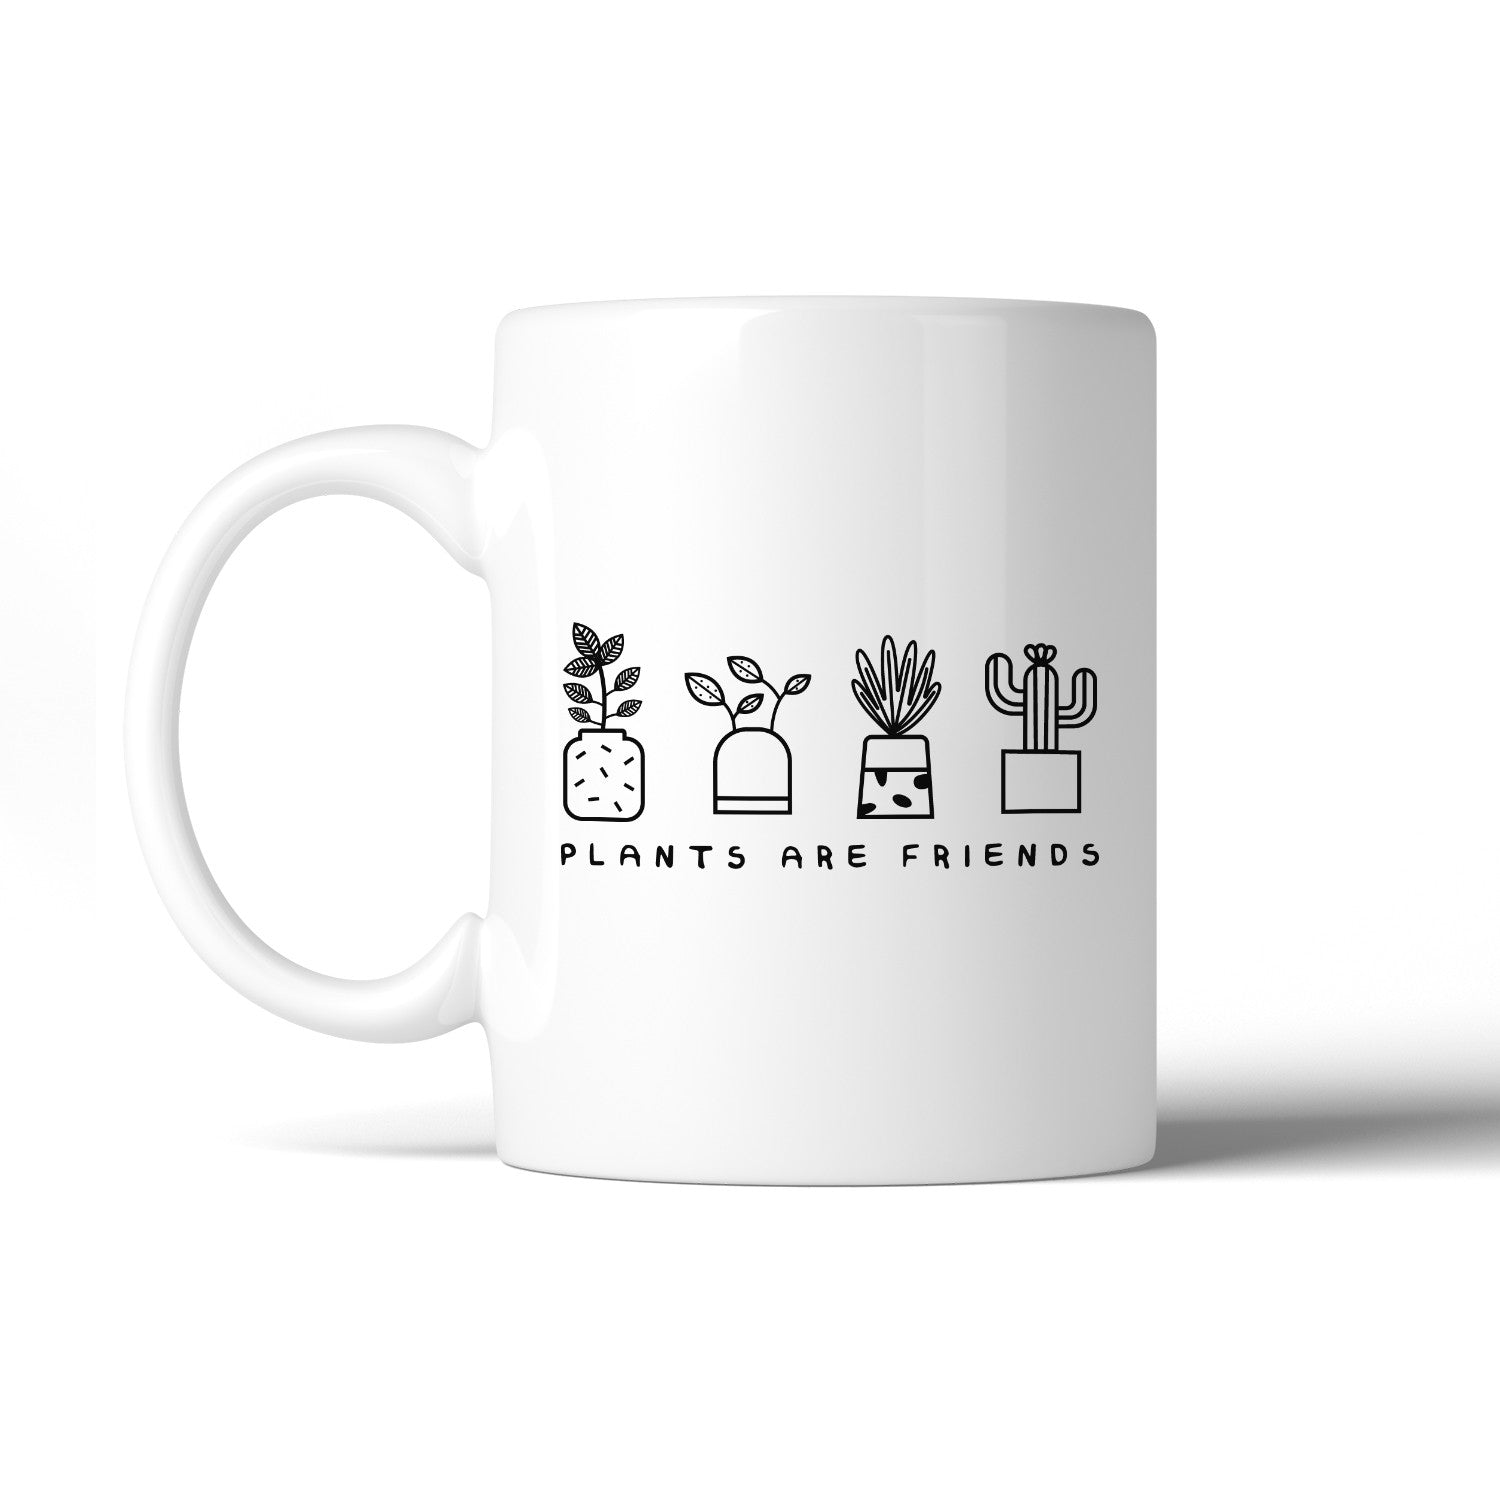 Plants Are Friends Cute Design Coffee Mug Gift Idea For Plant Lover 365 In Love Matching Gifts Ideas